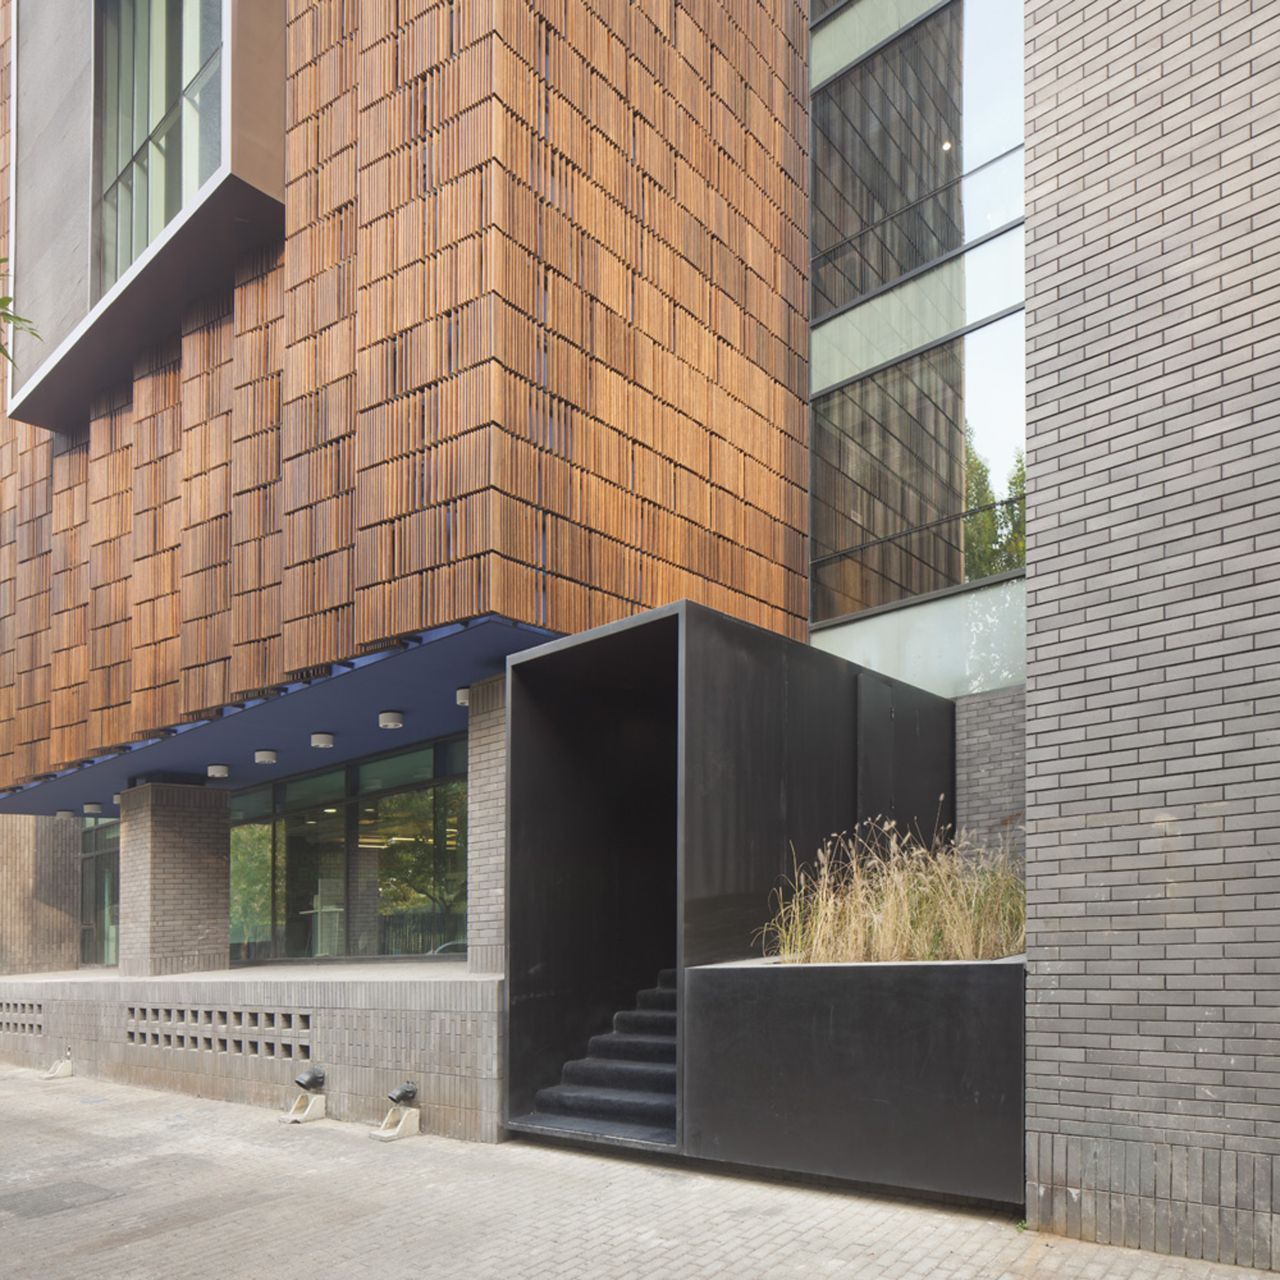 Brick Wood Glass Stone Facade With Sheet Metal Entryway